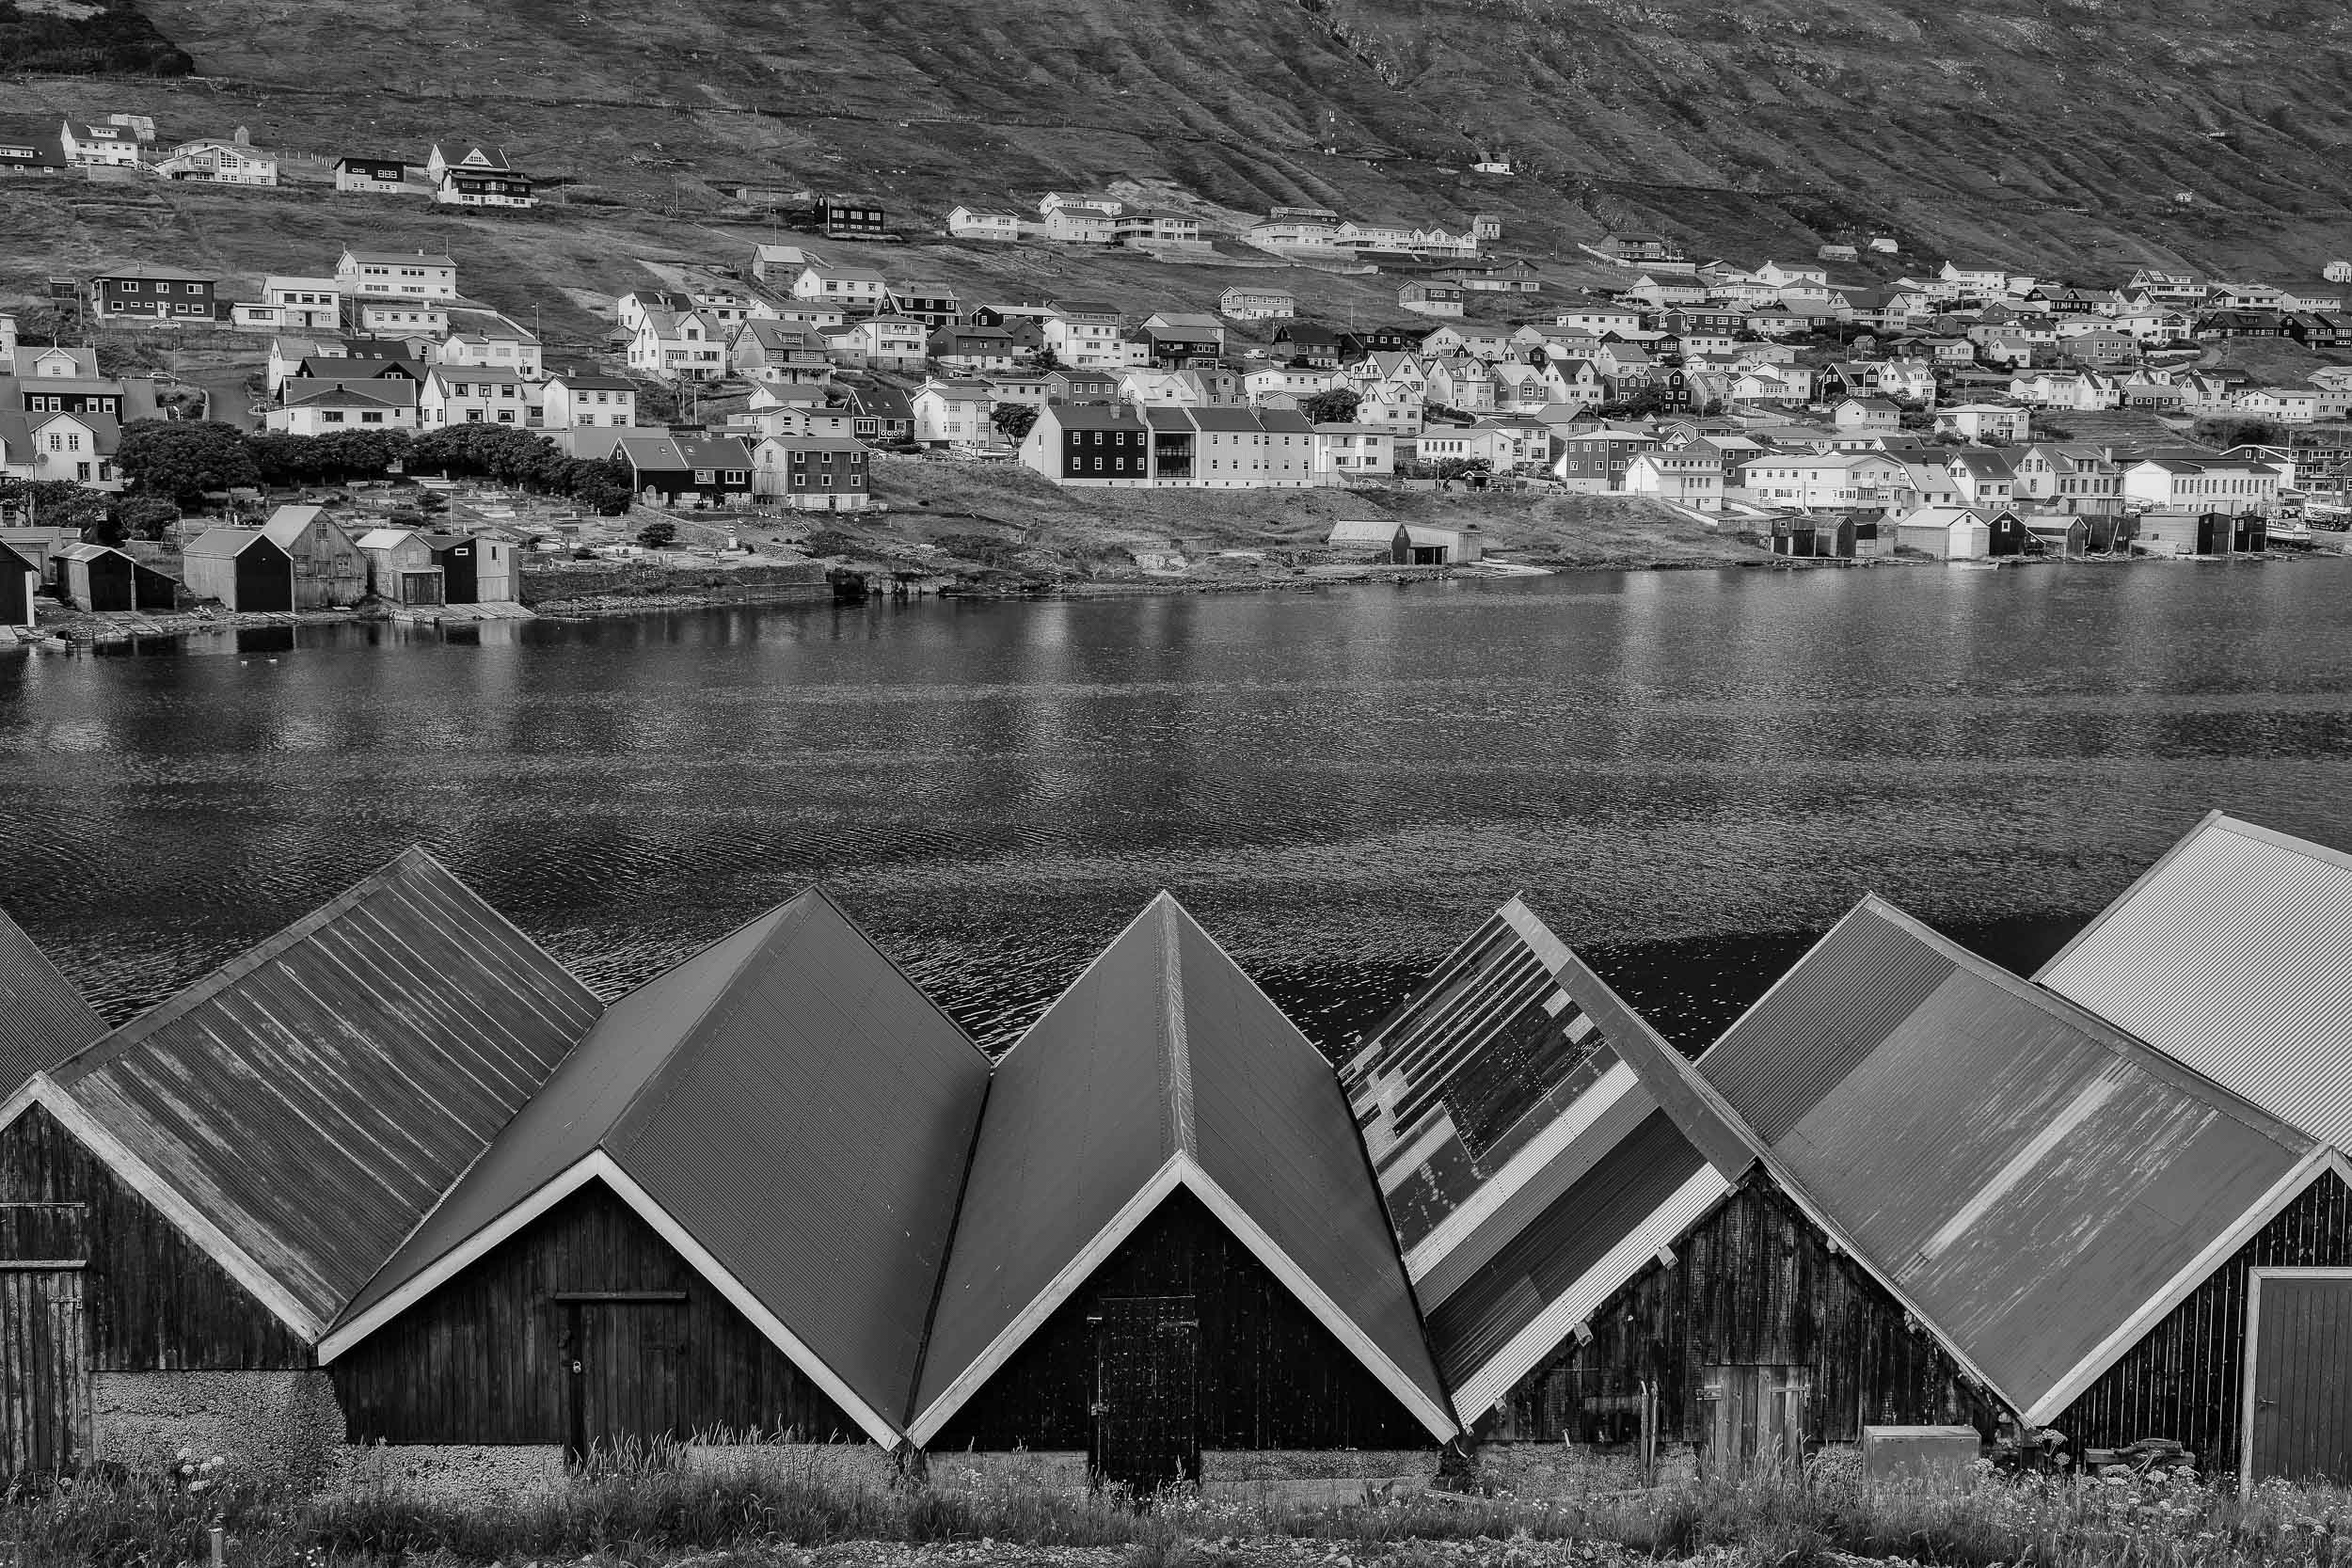 Boat houses and fjord in the    village of Vágur    on the island of    Suðuroy    in the    Faroe Islands   .